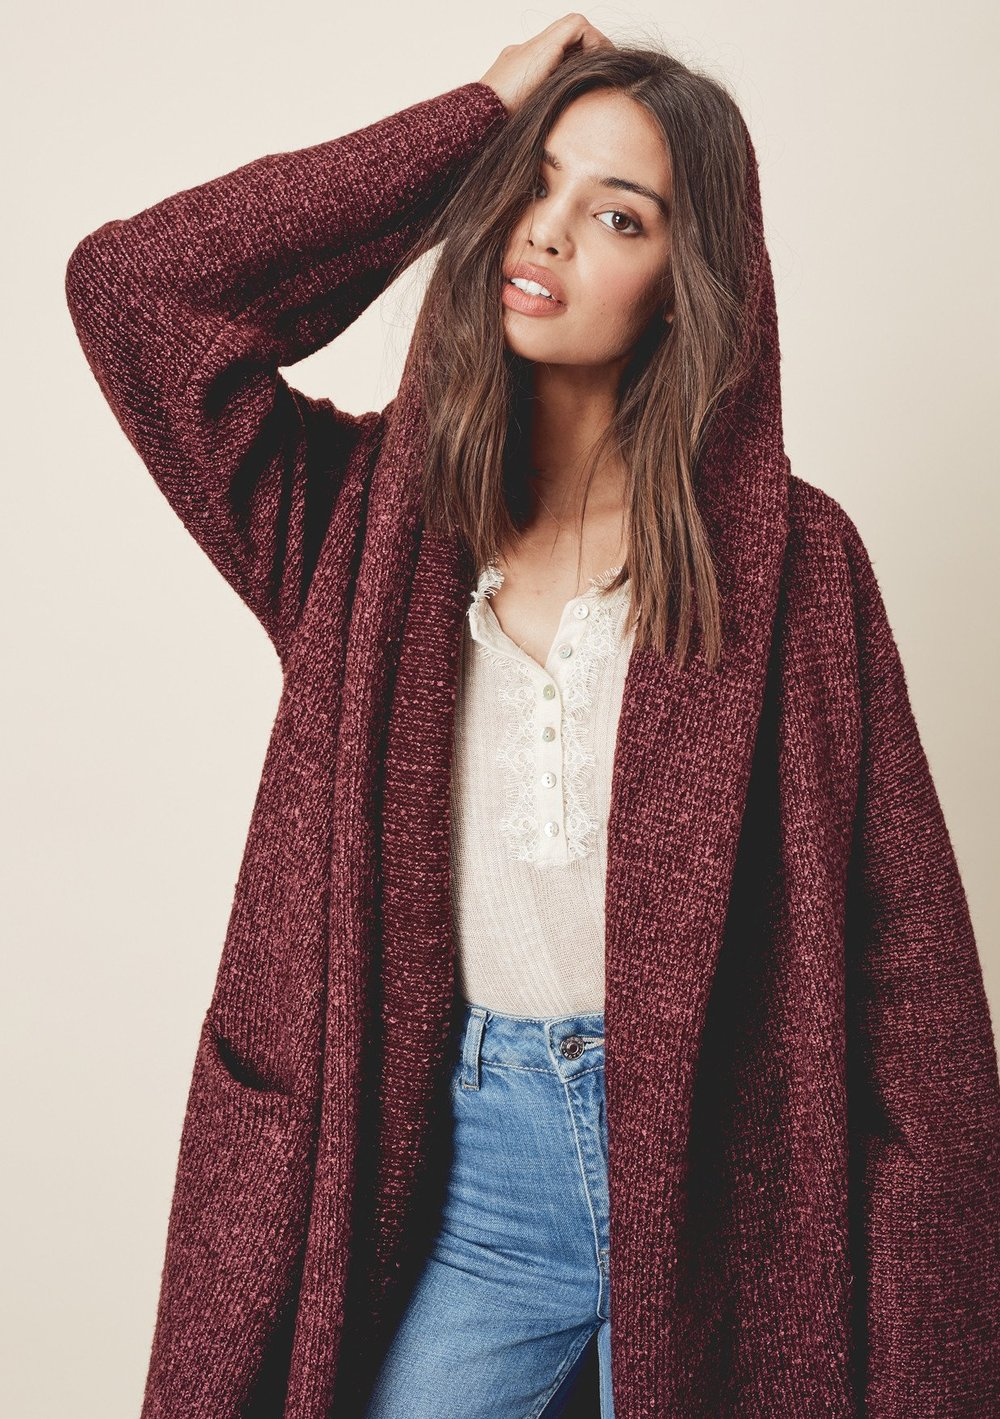 A Fall Staple // Comes in several colors, super soft, and great quality